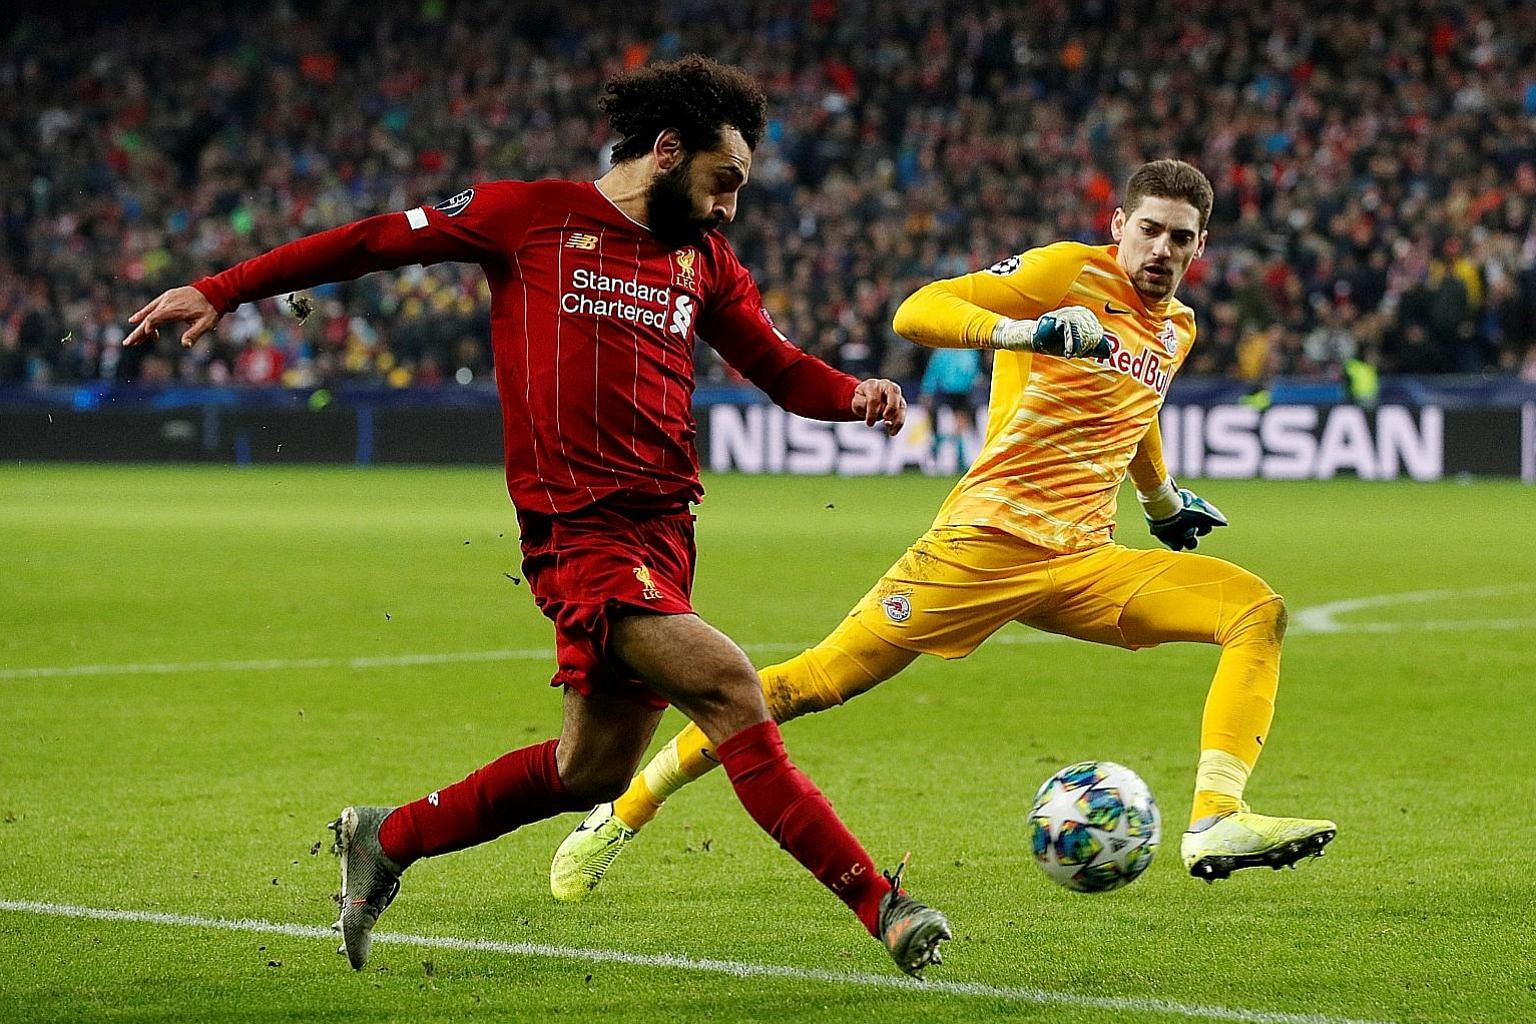 Having missed a host of easy chances, Mohamed Salah got the breakthrough with a neat finish from a tight angle for Liverpool's second goal. The 2-0 win over Salzburg on Tuesday ensured top place in Group E of the Champions League for the Reds, ahead